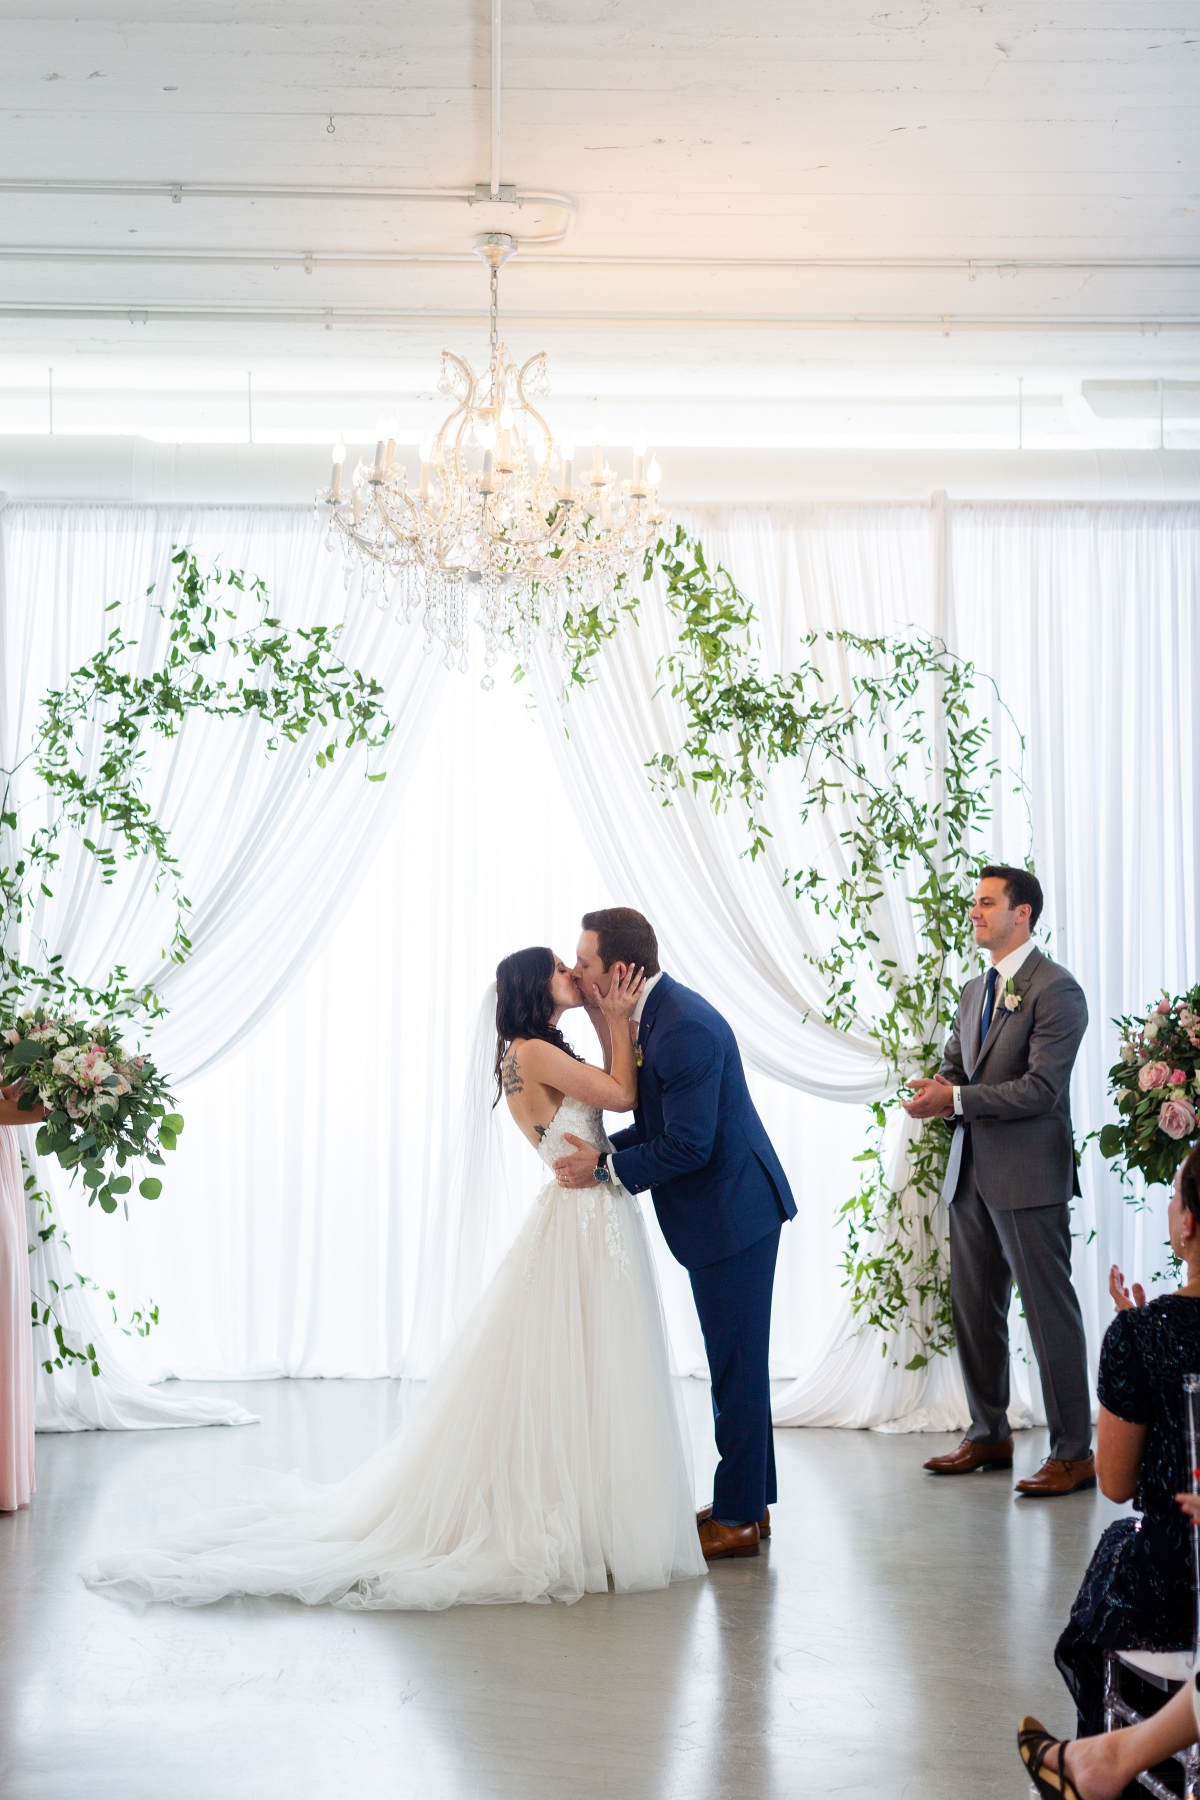 Room 1520 Chicago Wedding from Alexandra Lee Photography 59